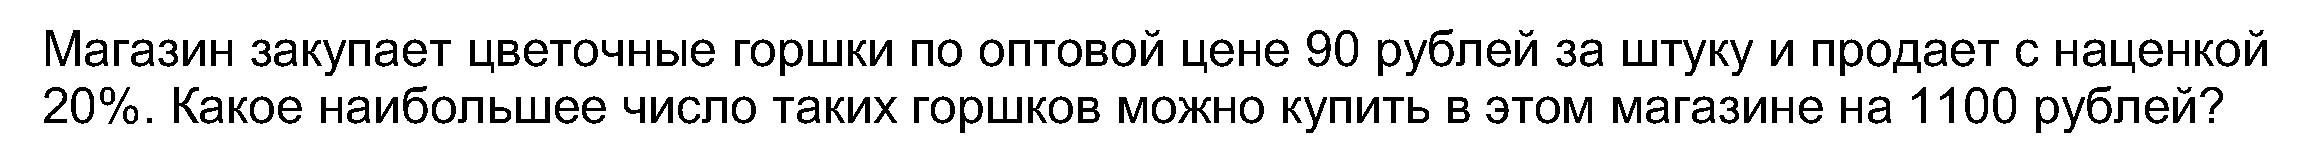 hello_html_m7ccc078.png